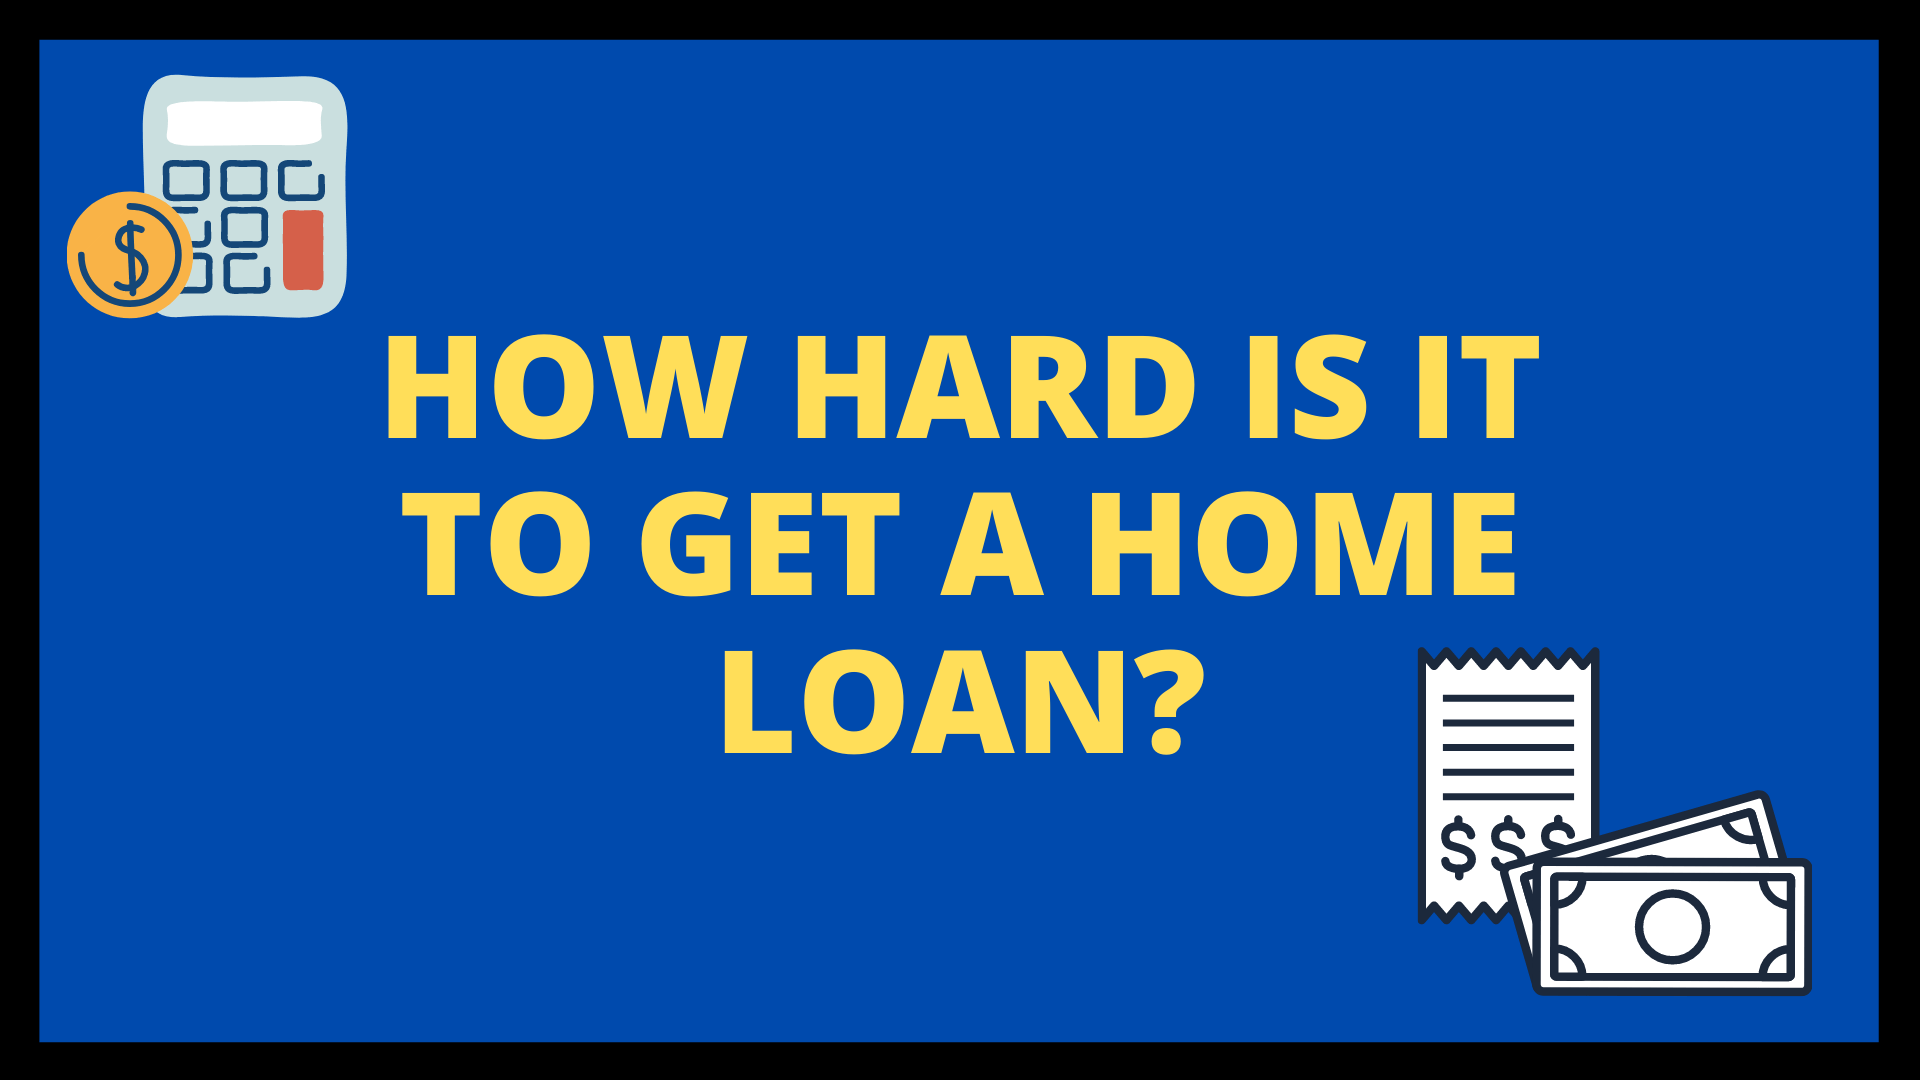 How Hard is it to get a Home Loan?